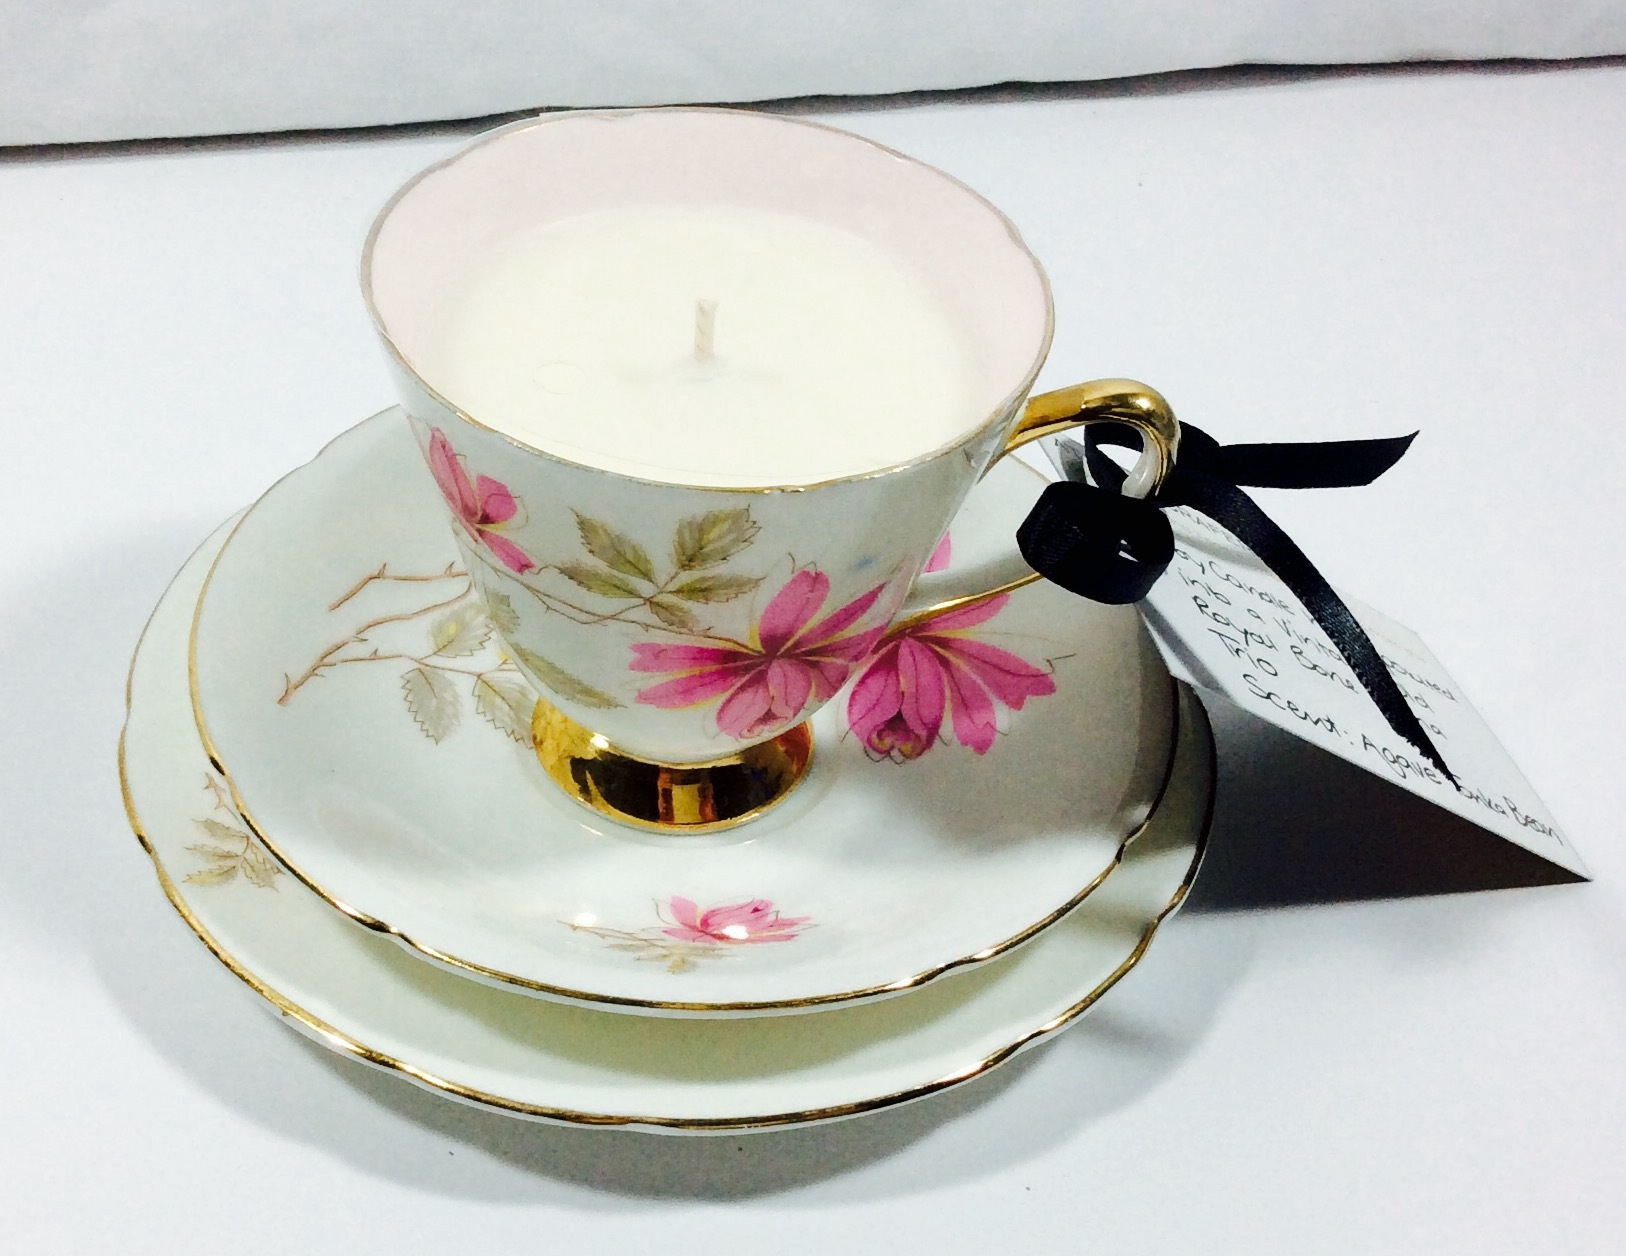 Vintage Tea Cup Candle - Old Royal Trio (1930-41, 3739) - Agave Tonka Bean